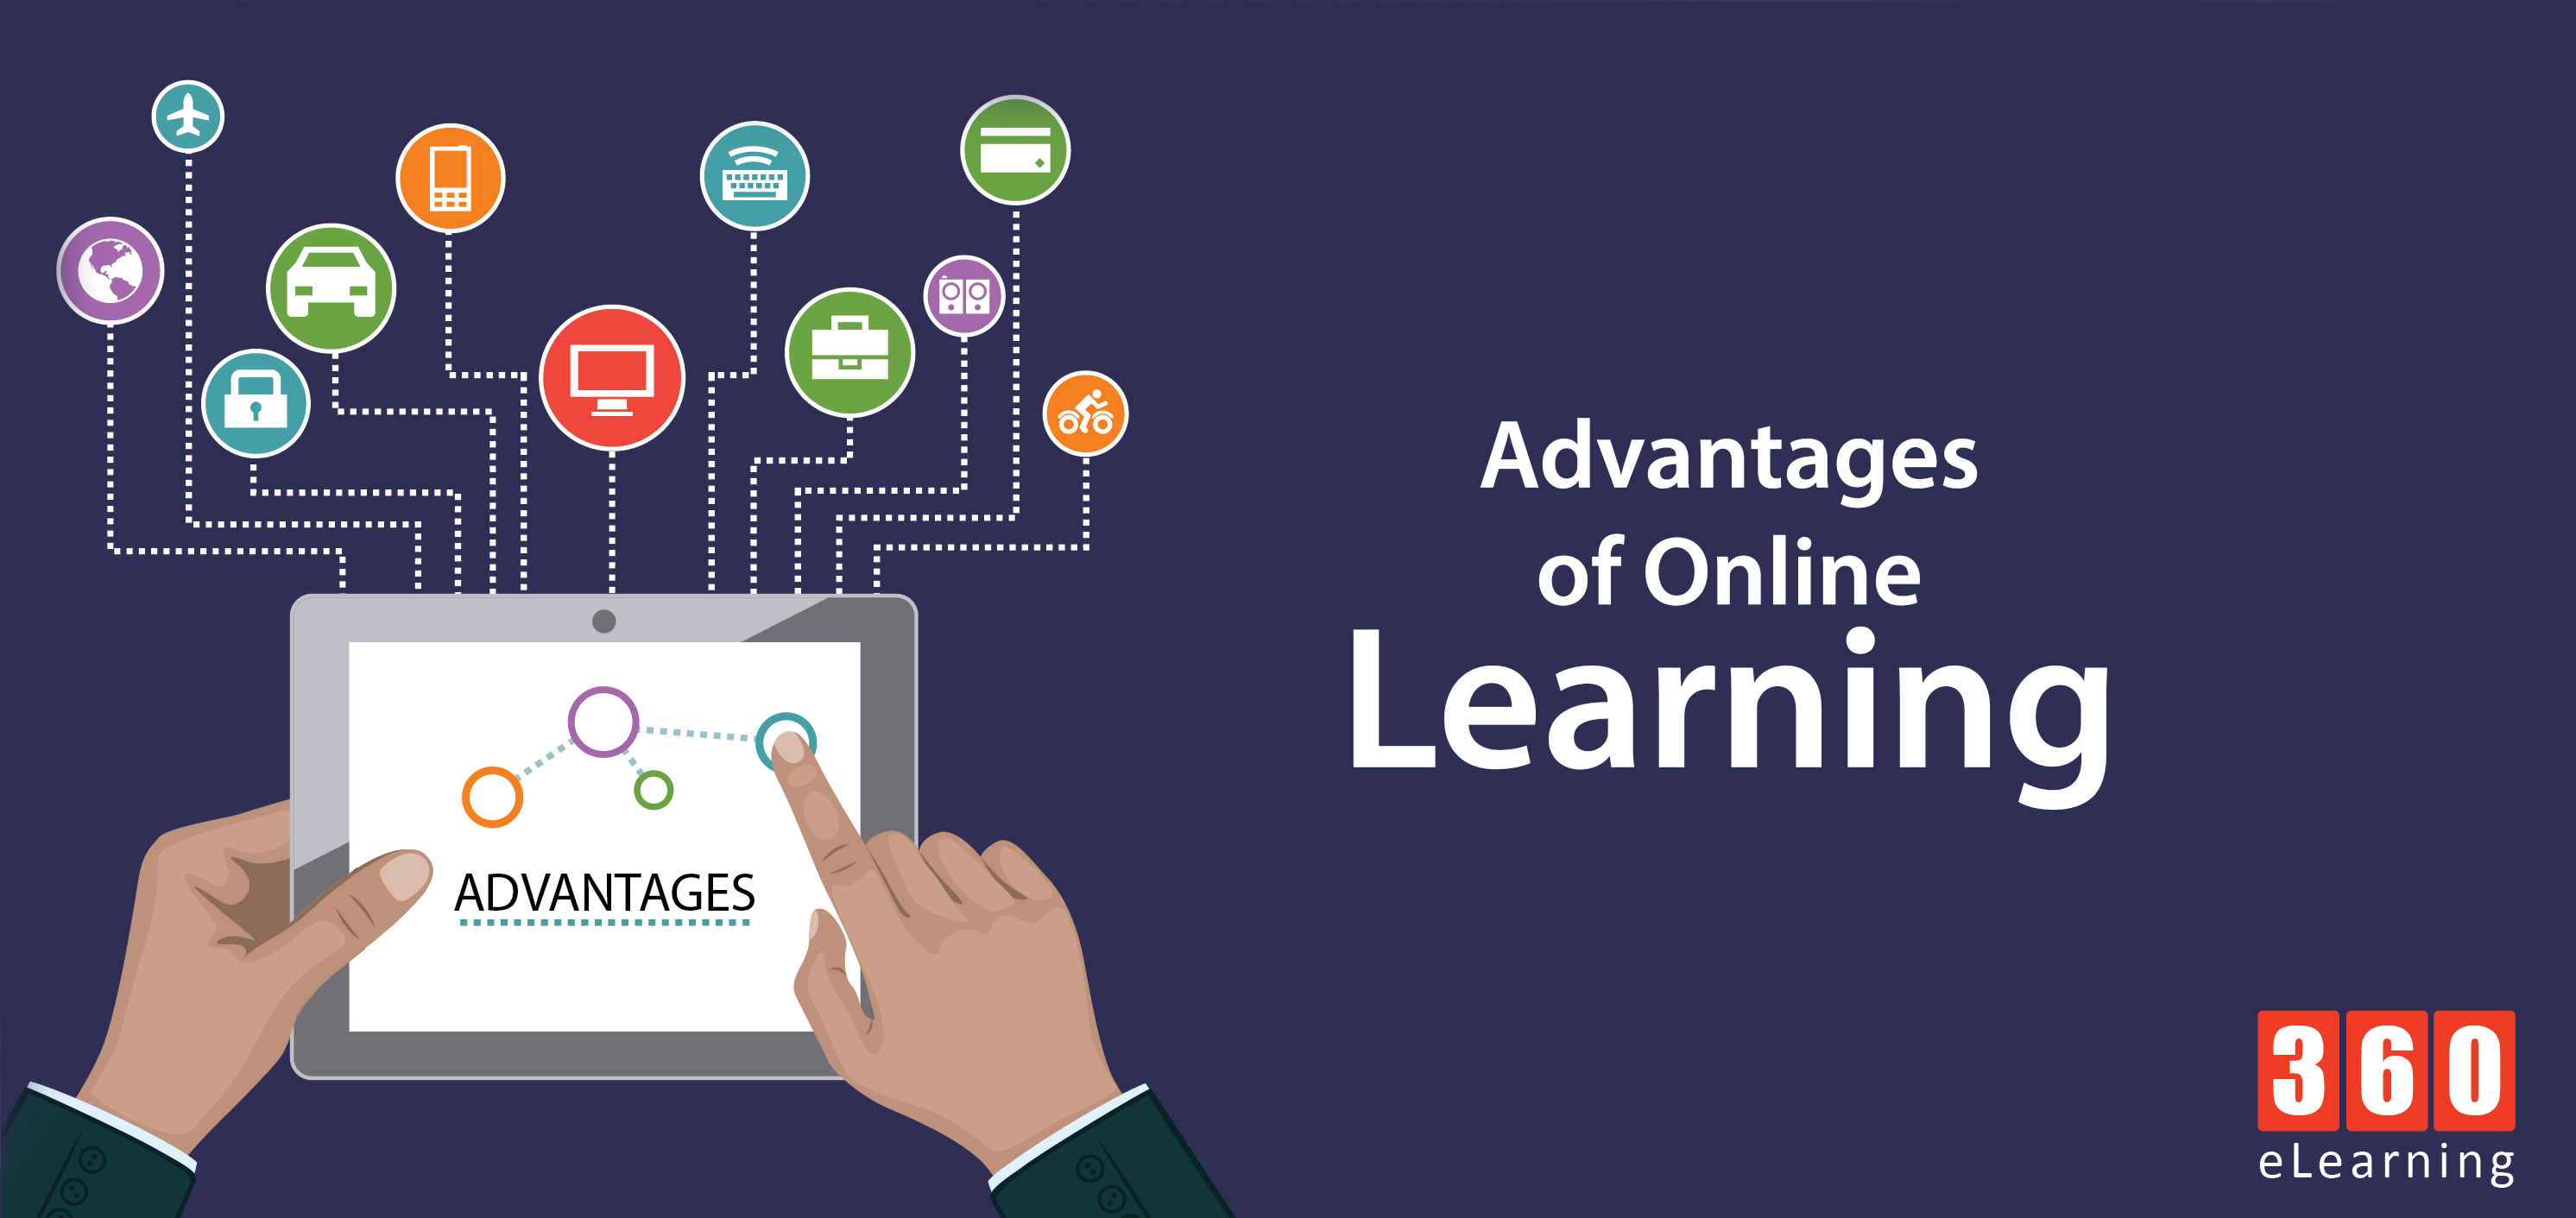 Advantages of Online Learning - 360eLearning Blog